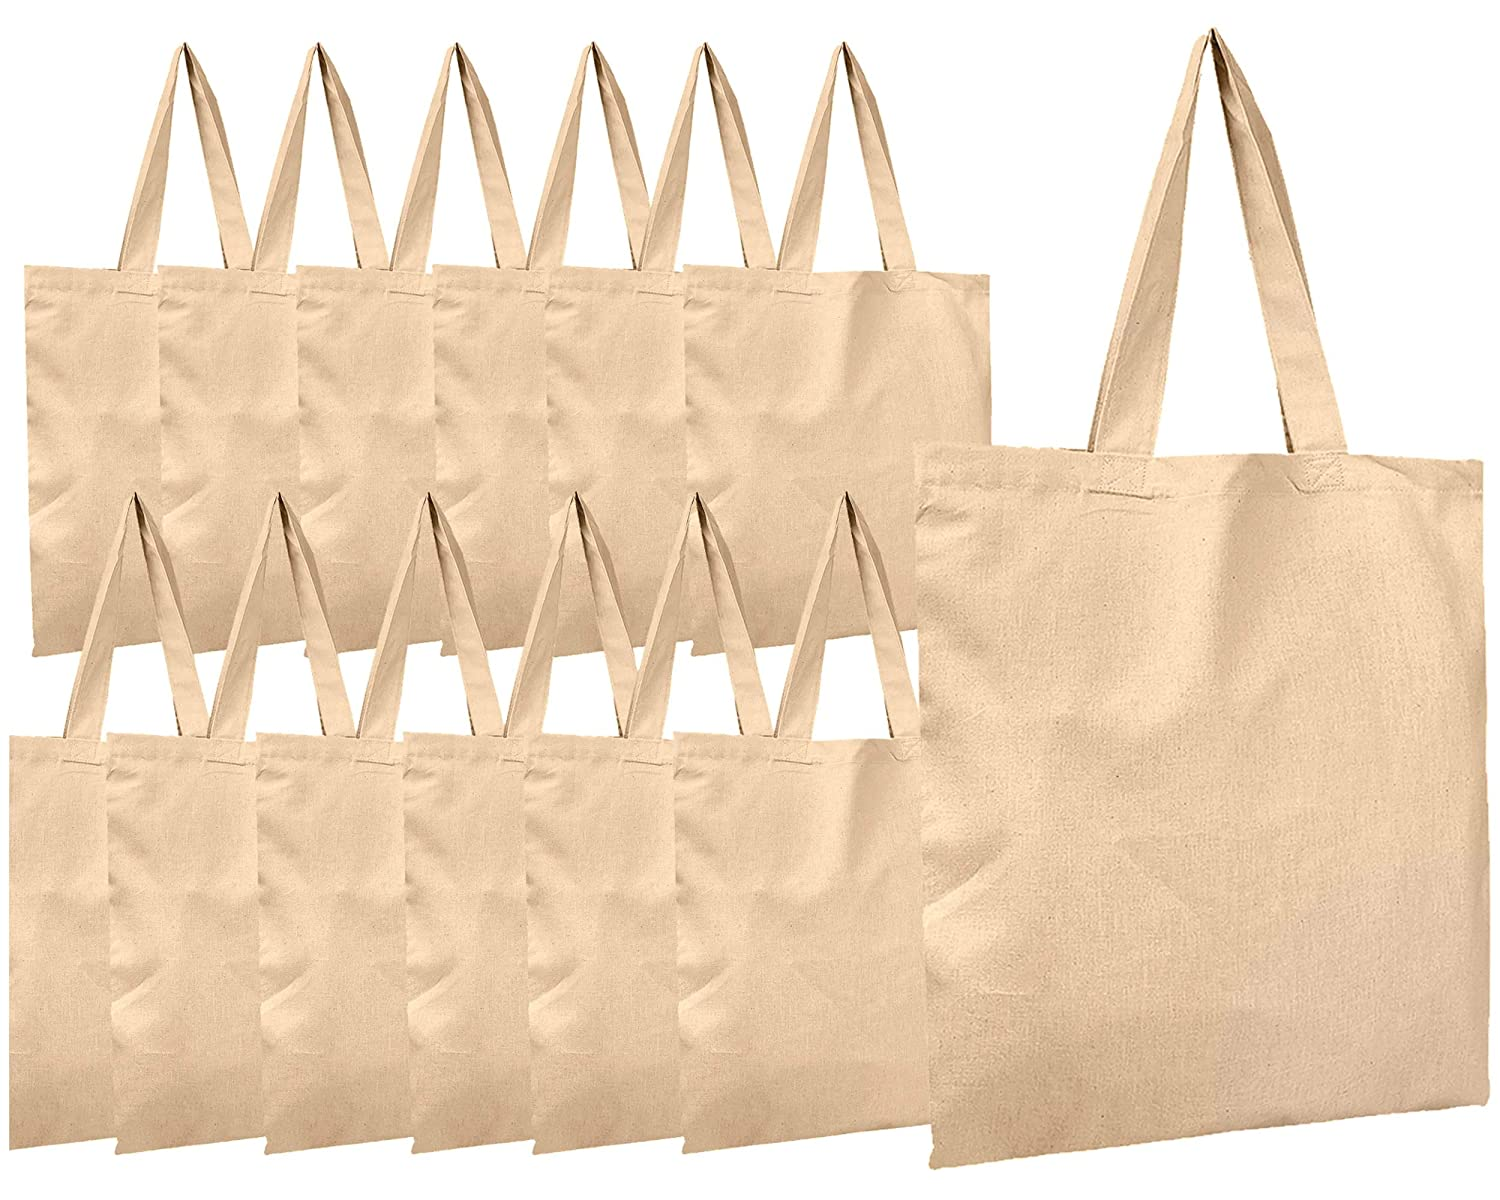 03ec82230e0 BagzDepot Canvas Tote Bags Wholesale - 12 Pack - Grocery Cotton Tote Bags  in Bulk, Reusable Bags for Decorating Crafts Blank Canvas Bags Events  Schools Well ...